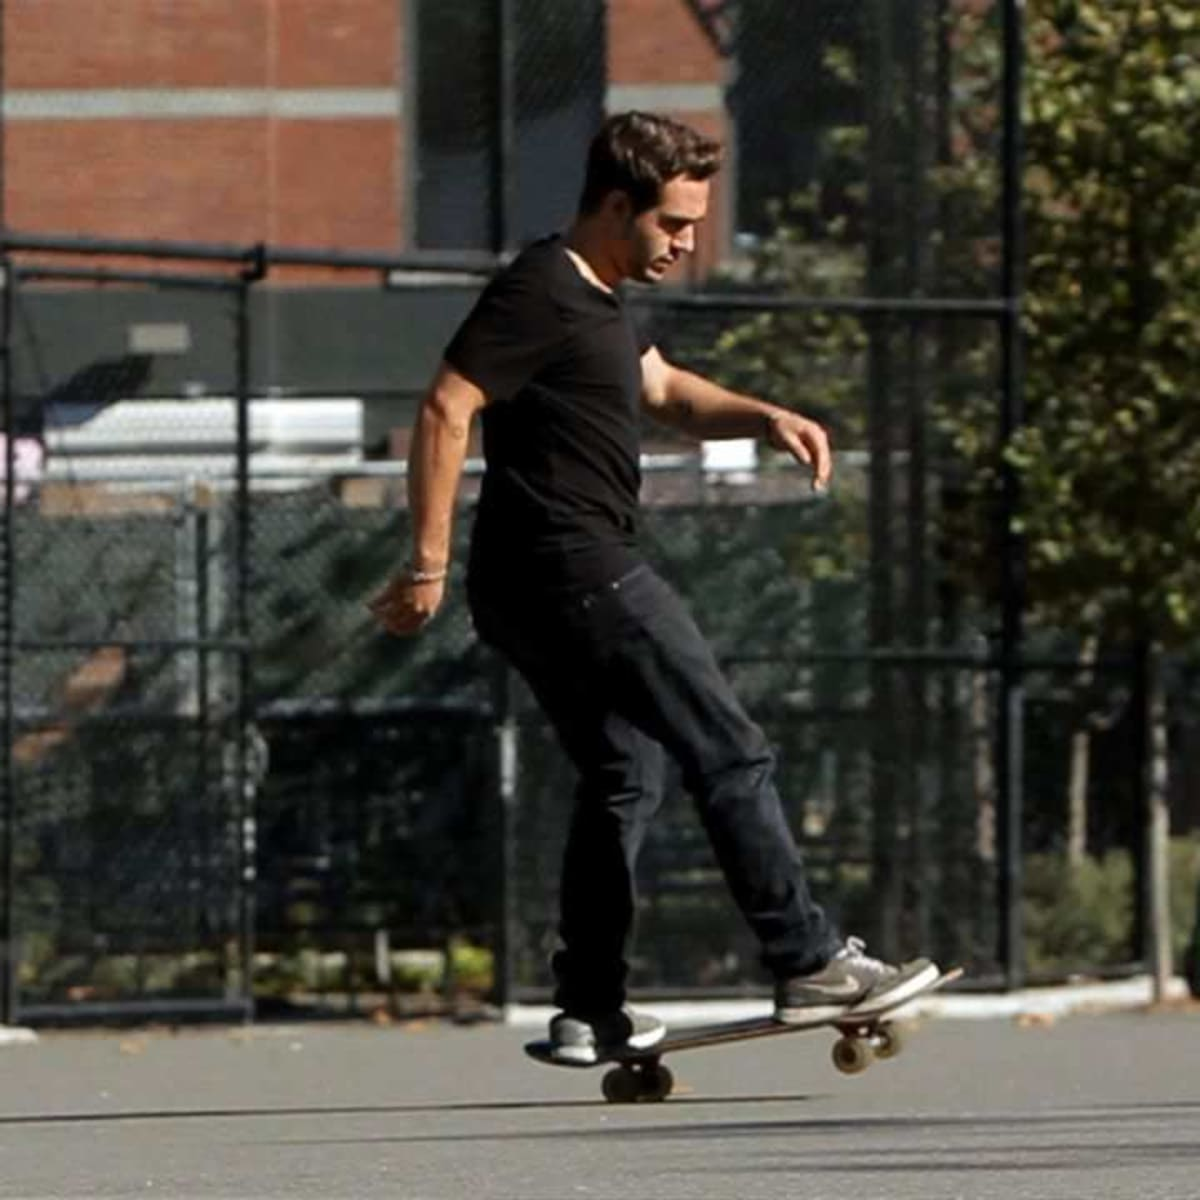 Are You A Goofy Or Regular Skater Howcast